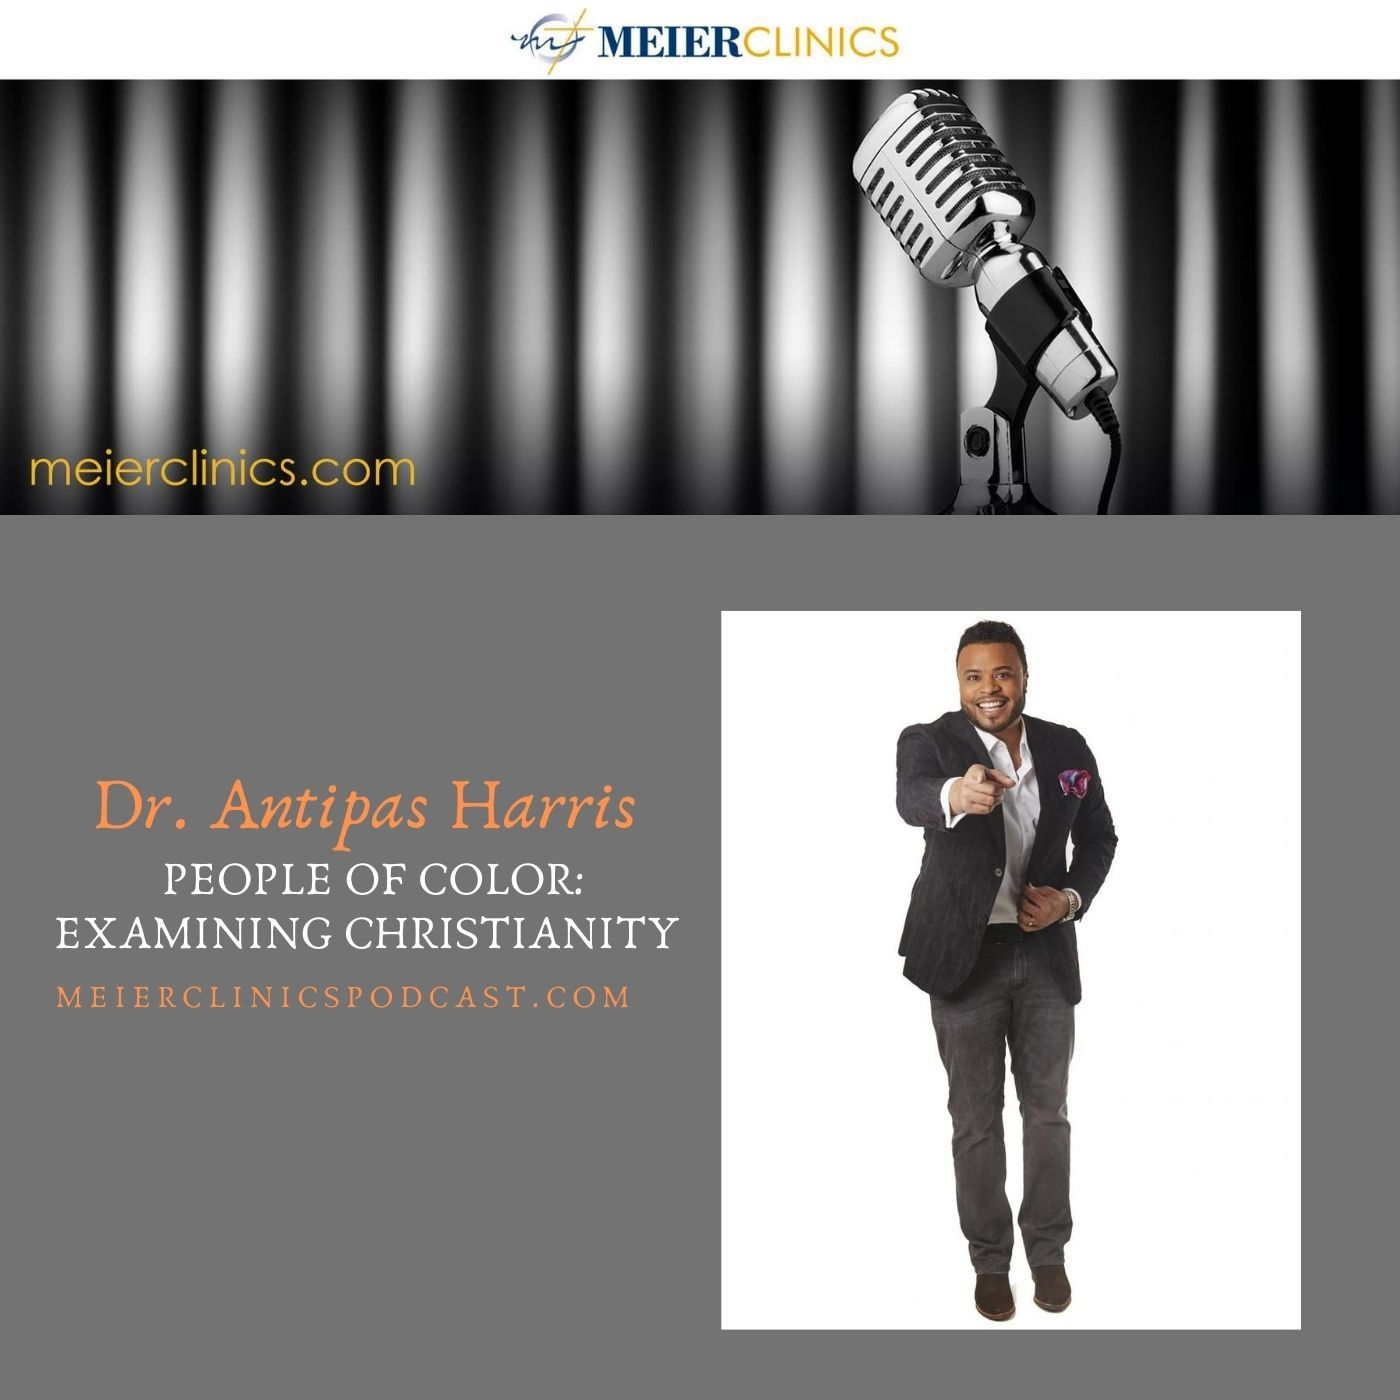 People of Color: Examining Christianity with Dr. Antipas Harris